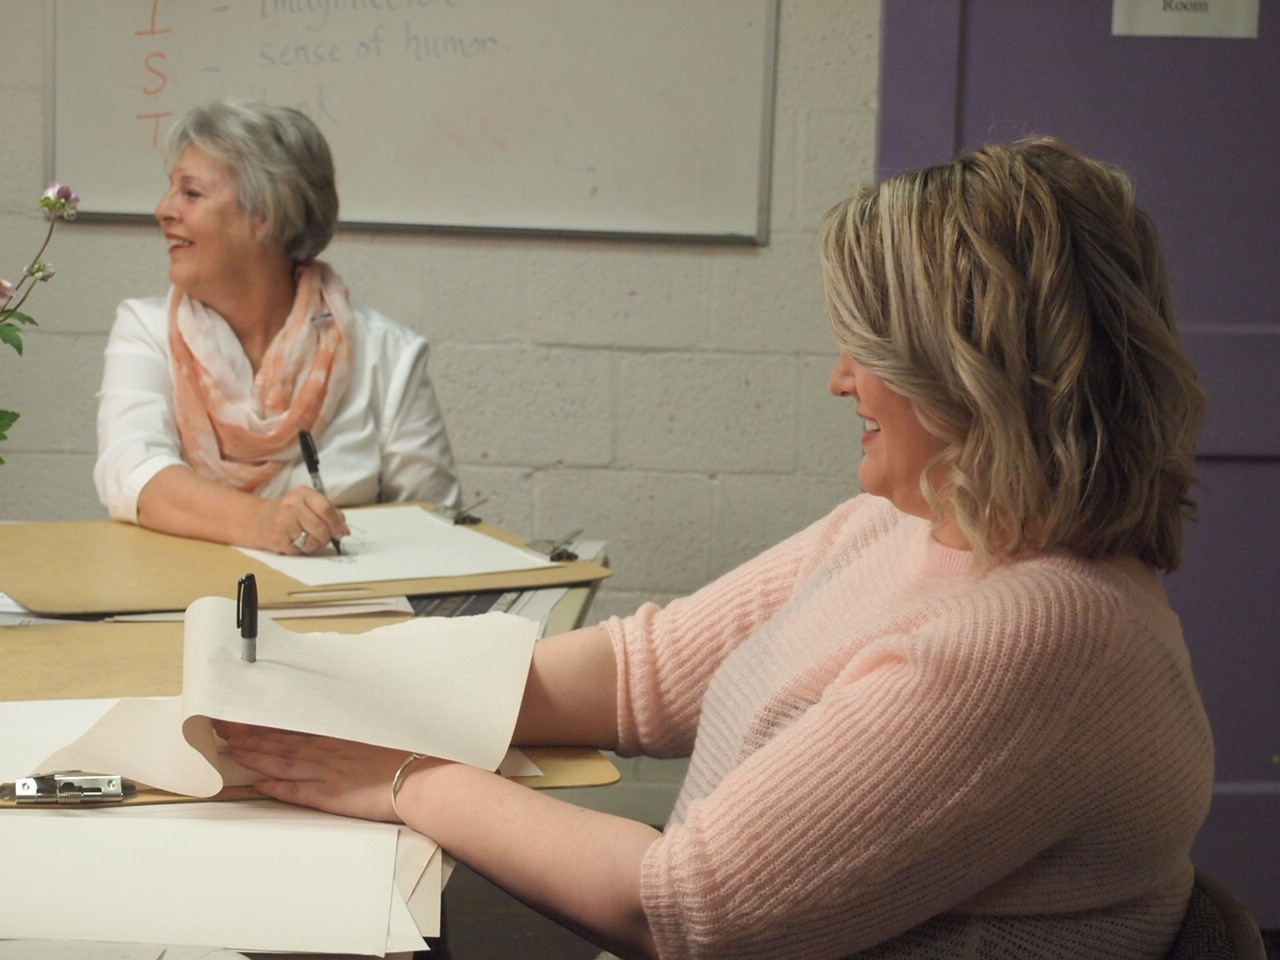 Ladies night out: blind contour drawing